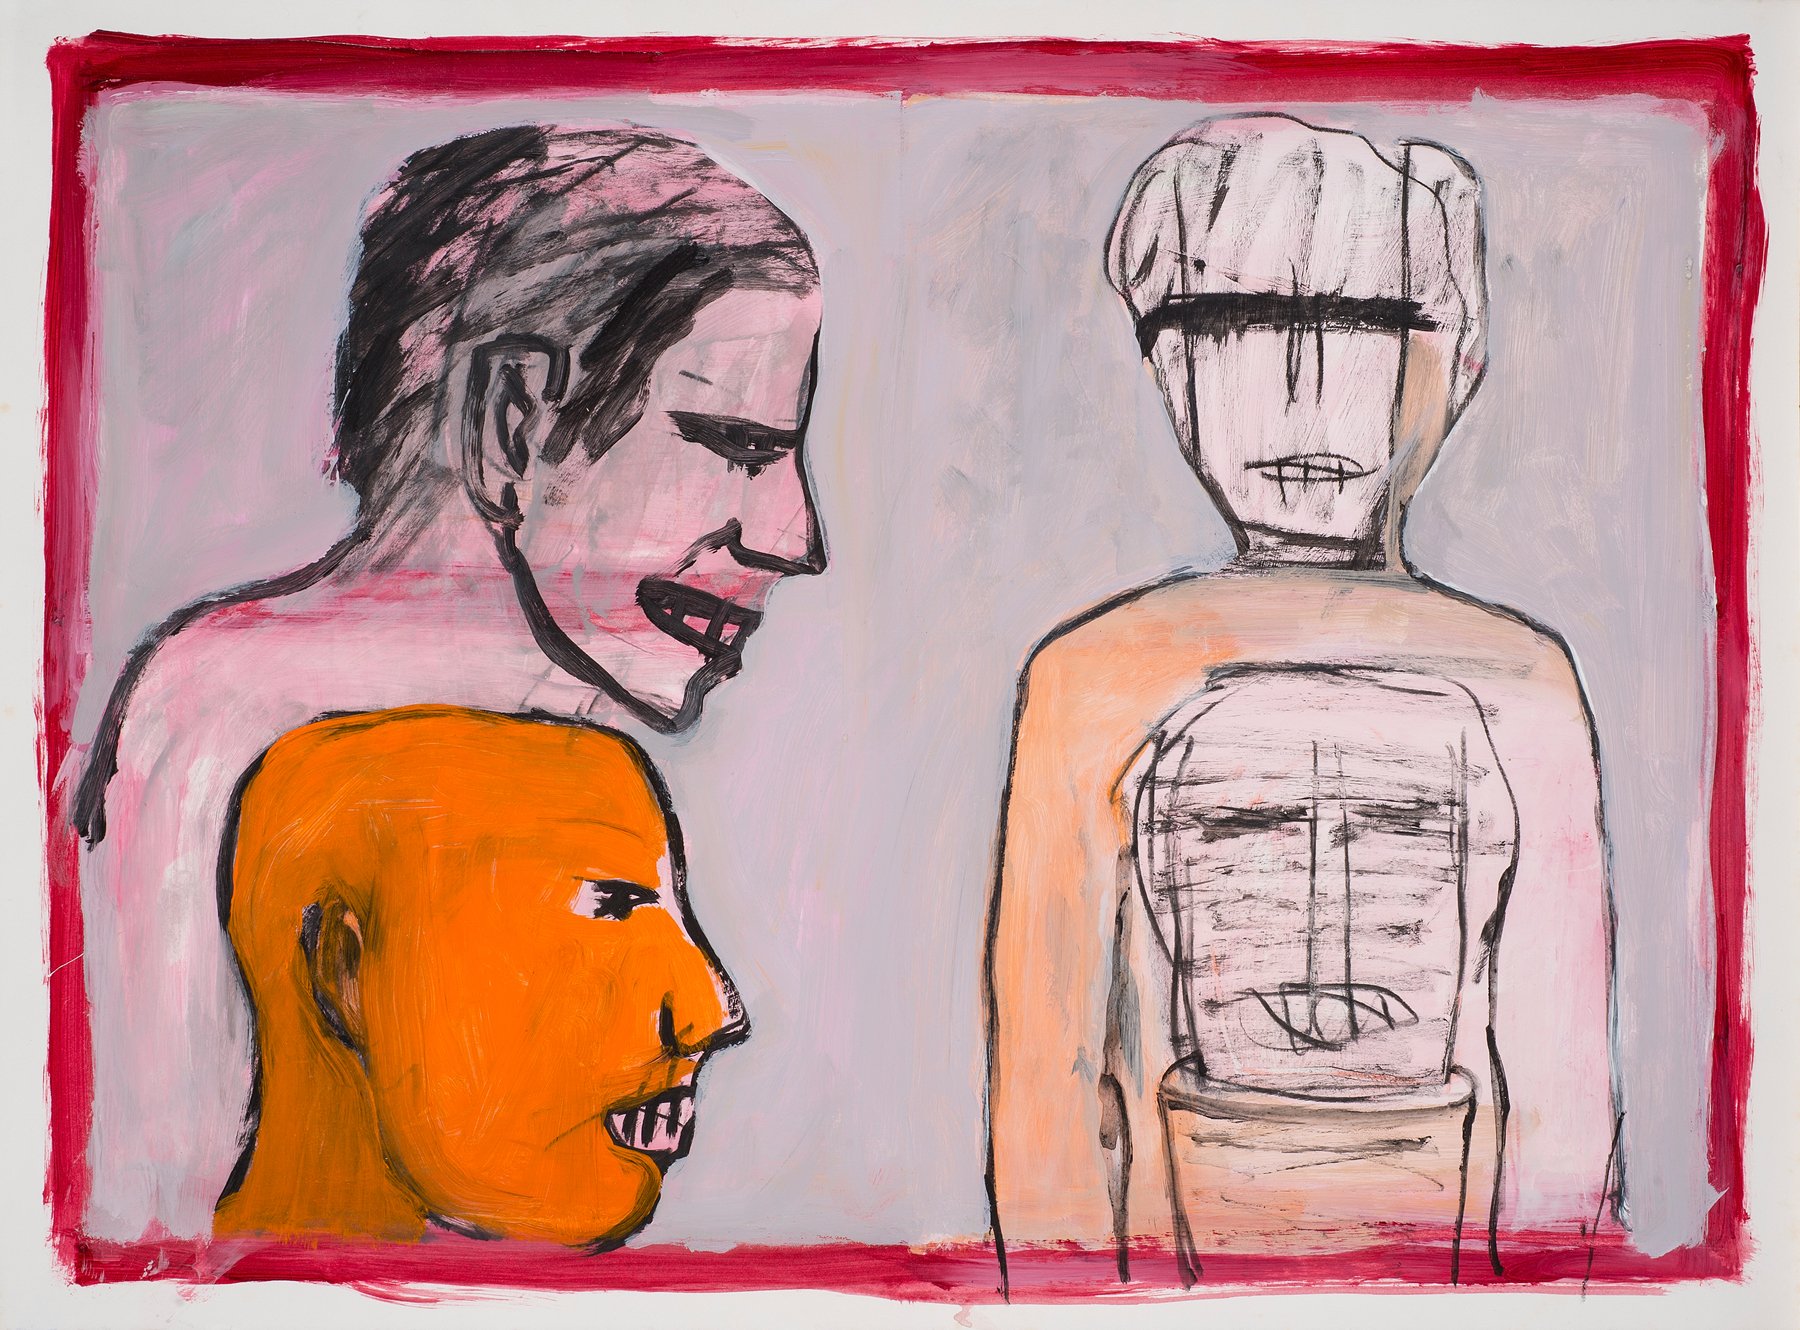 Untitled , 1984-85 Acrylic, charcoal on paper 23 x 31 in. (58 x 78 cm.) Photography courtesy of Paul Mutino